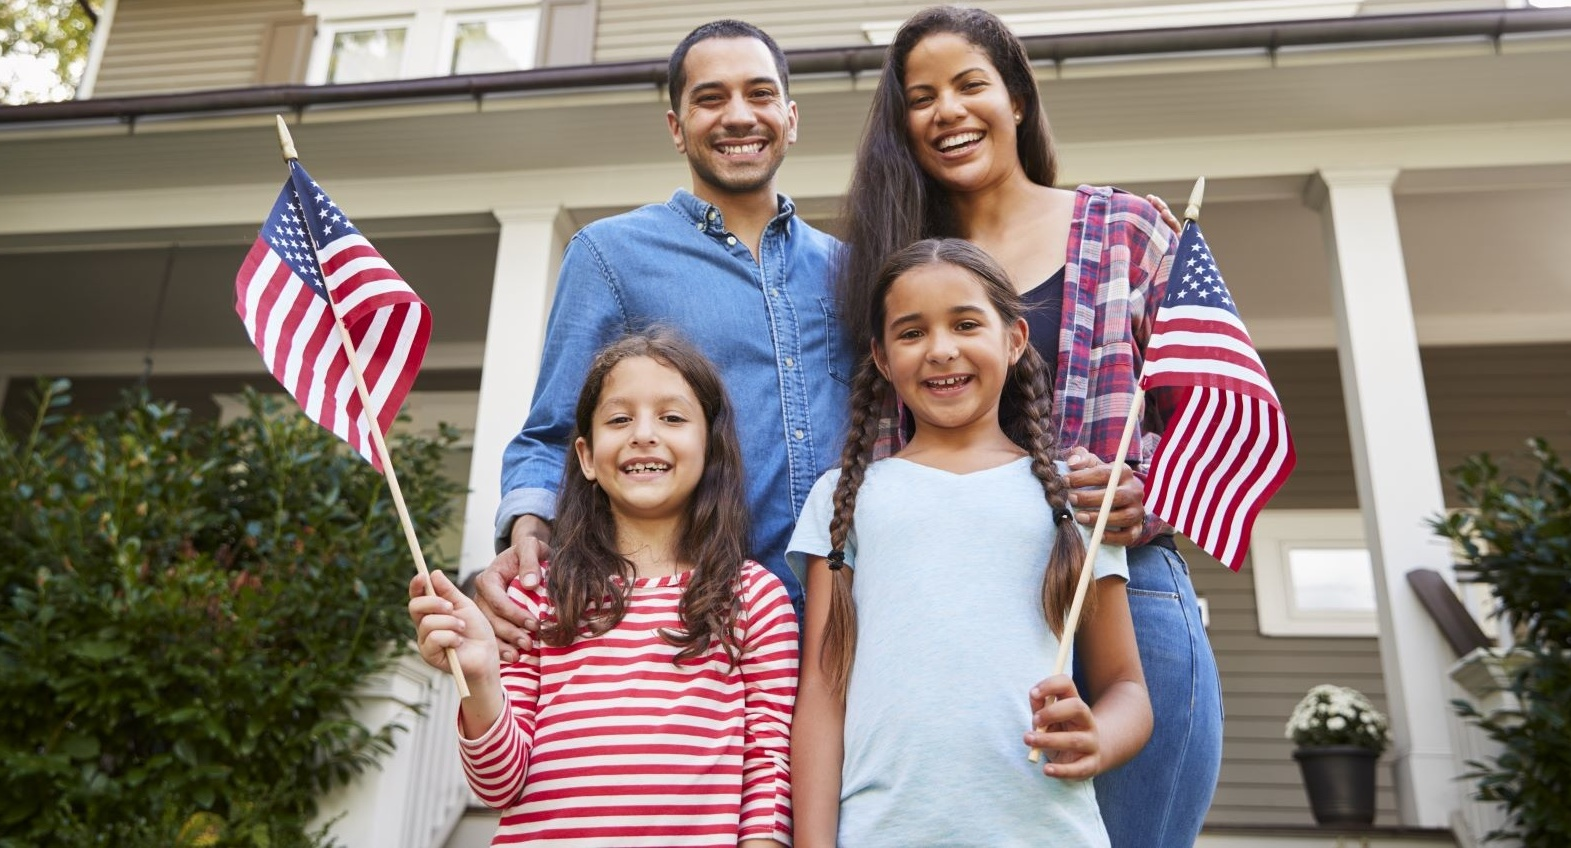 Beyond Hispanic Heritage Month: How You Can Drive Inclusion